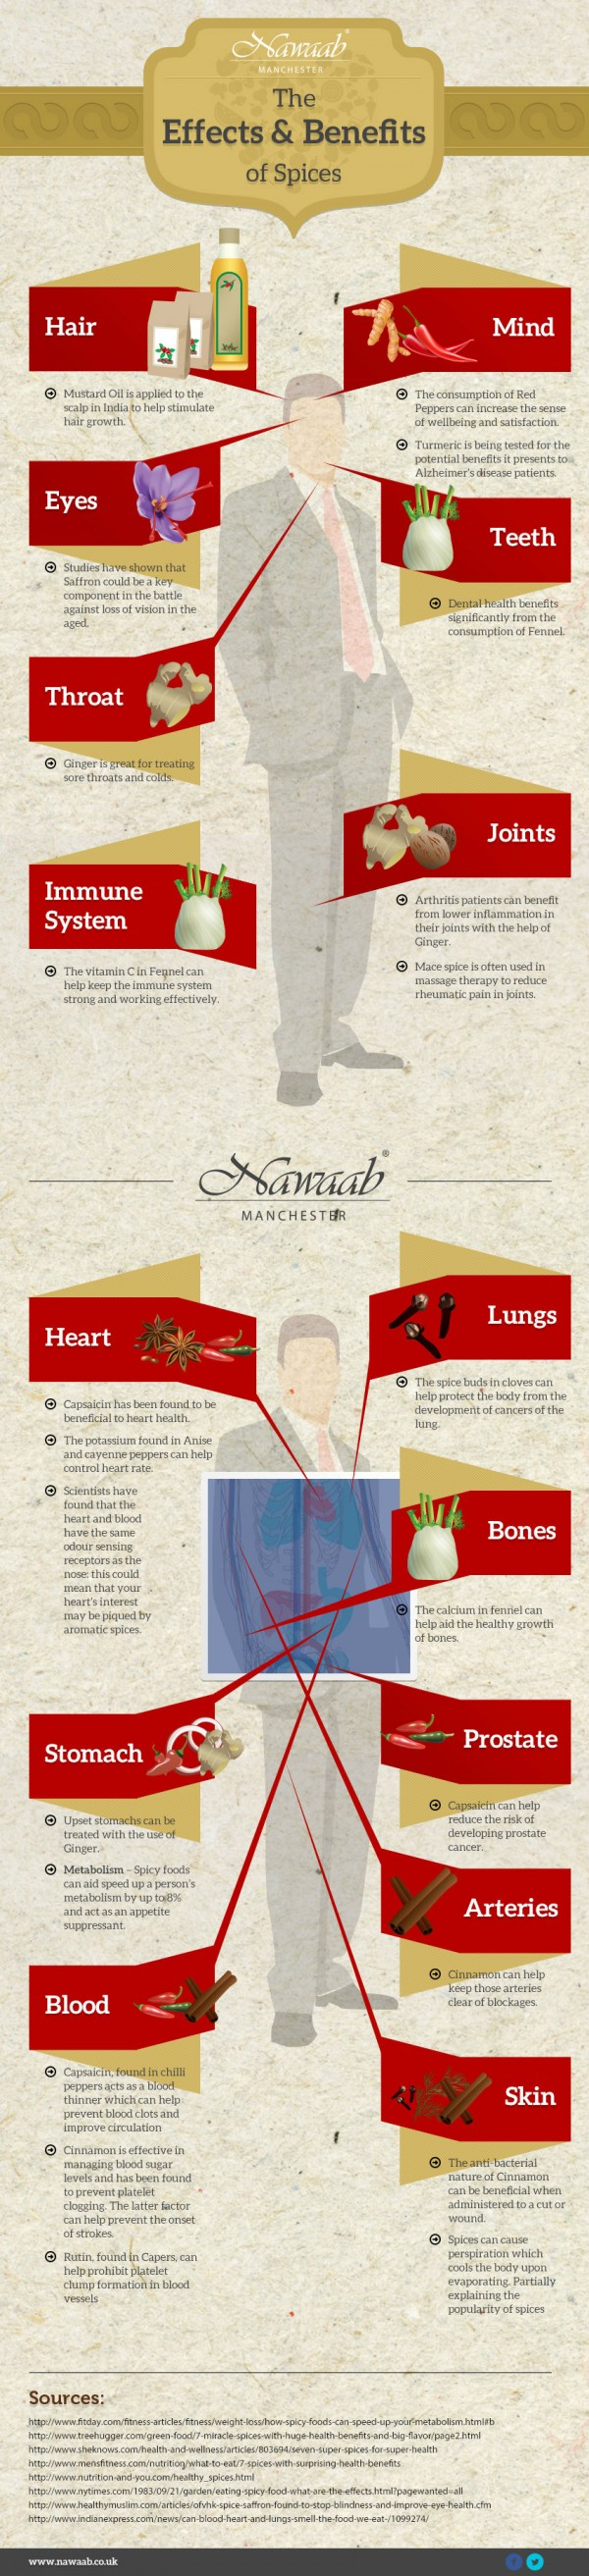 effects-and-benefits-of-spices-600x2625